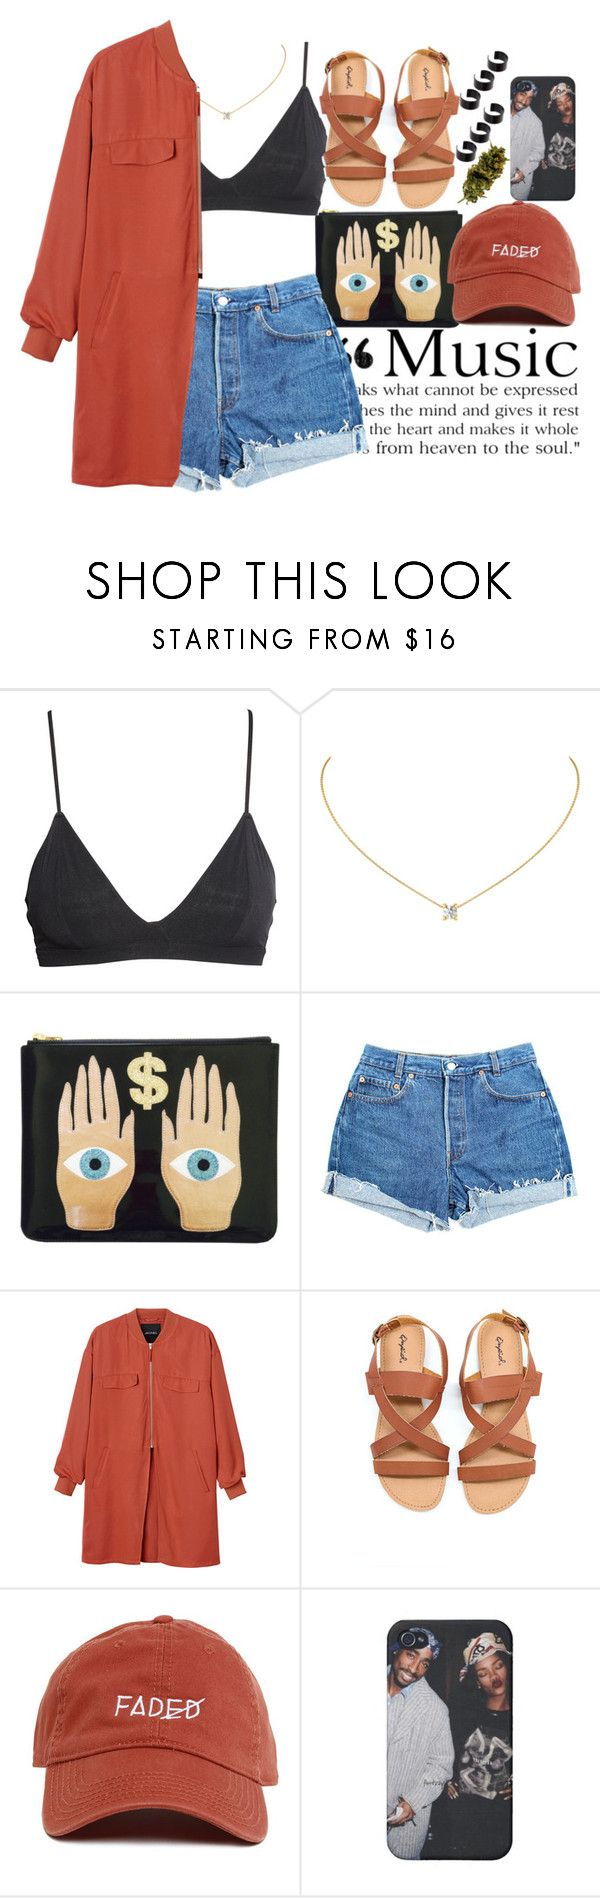 """I Love Spring ⛅"" by monroemaree ❤ liked on Polyvore featuring H&M, Aime, Levi's, Monki and ASOS"